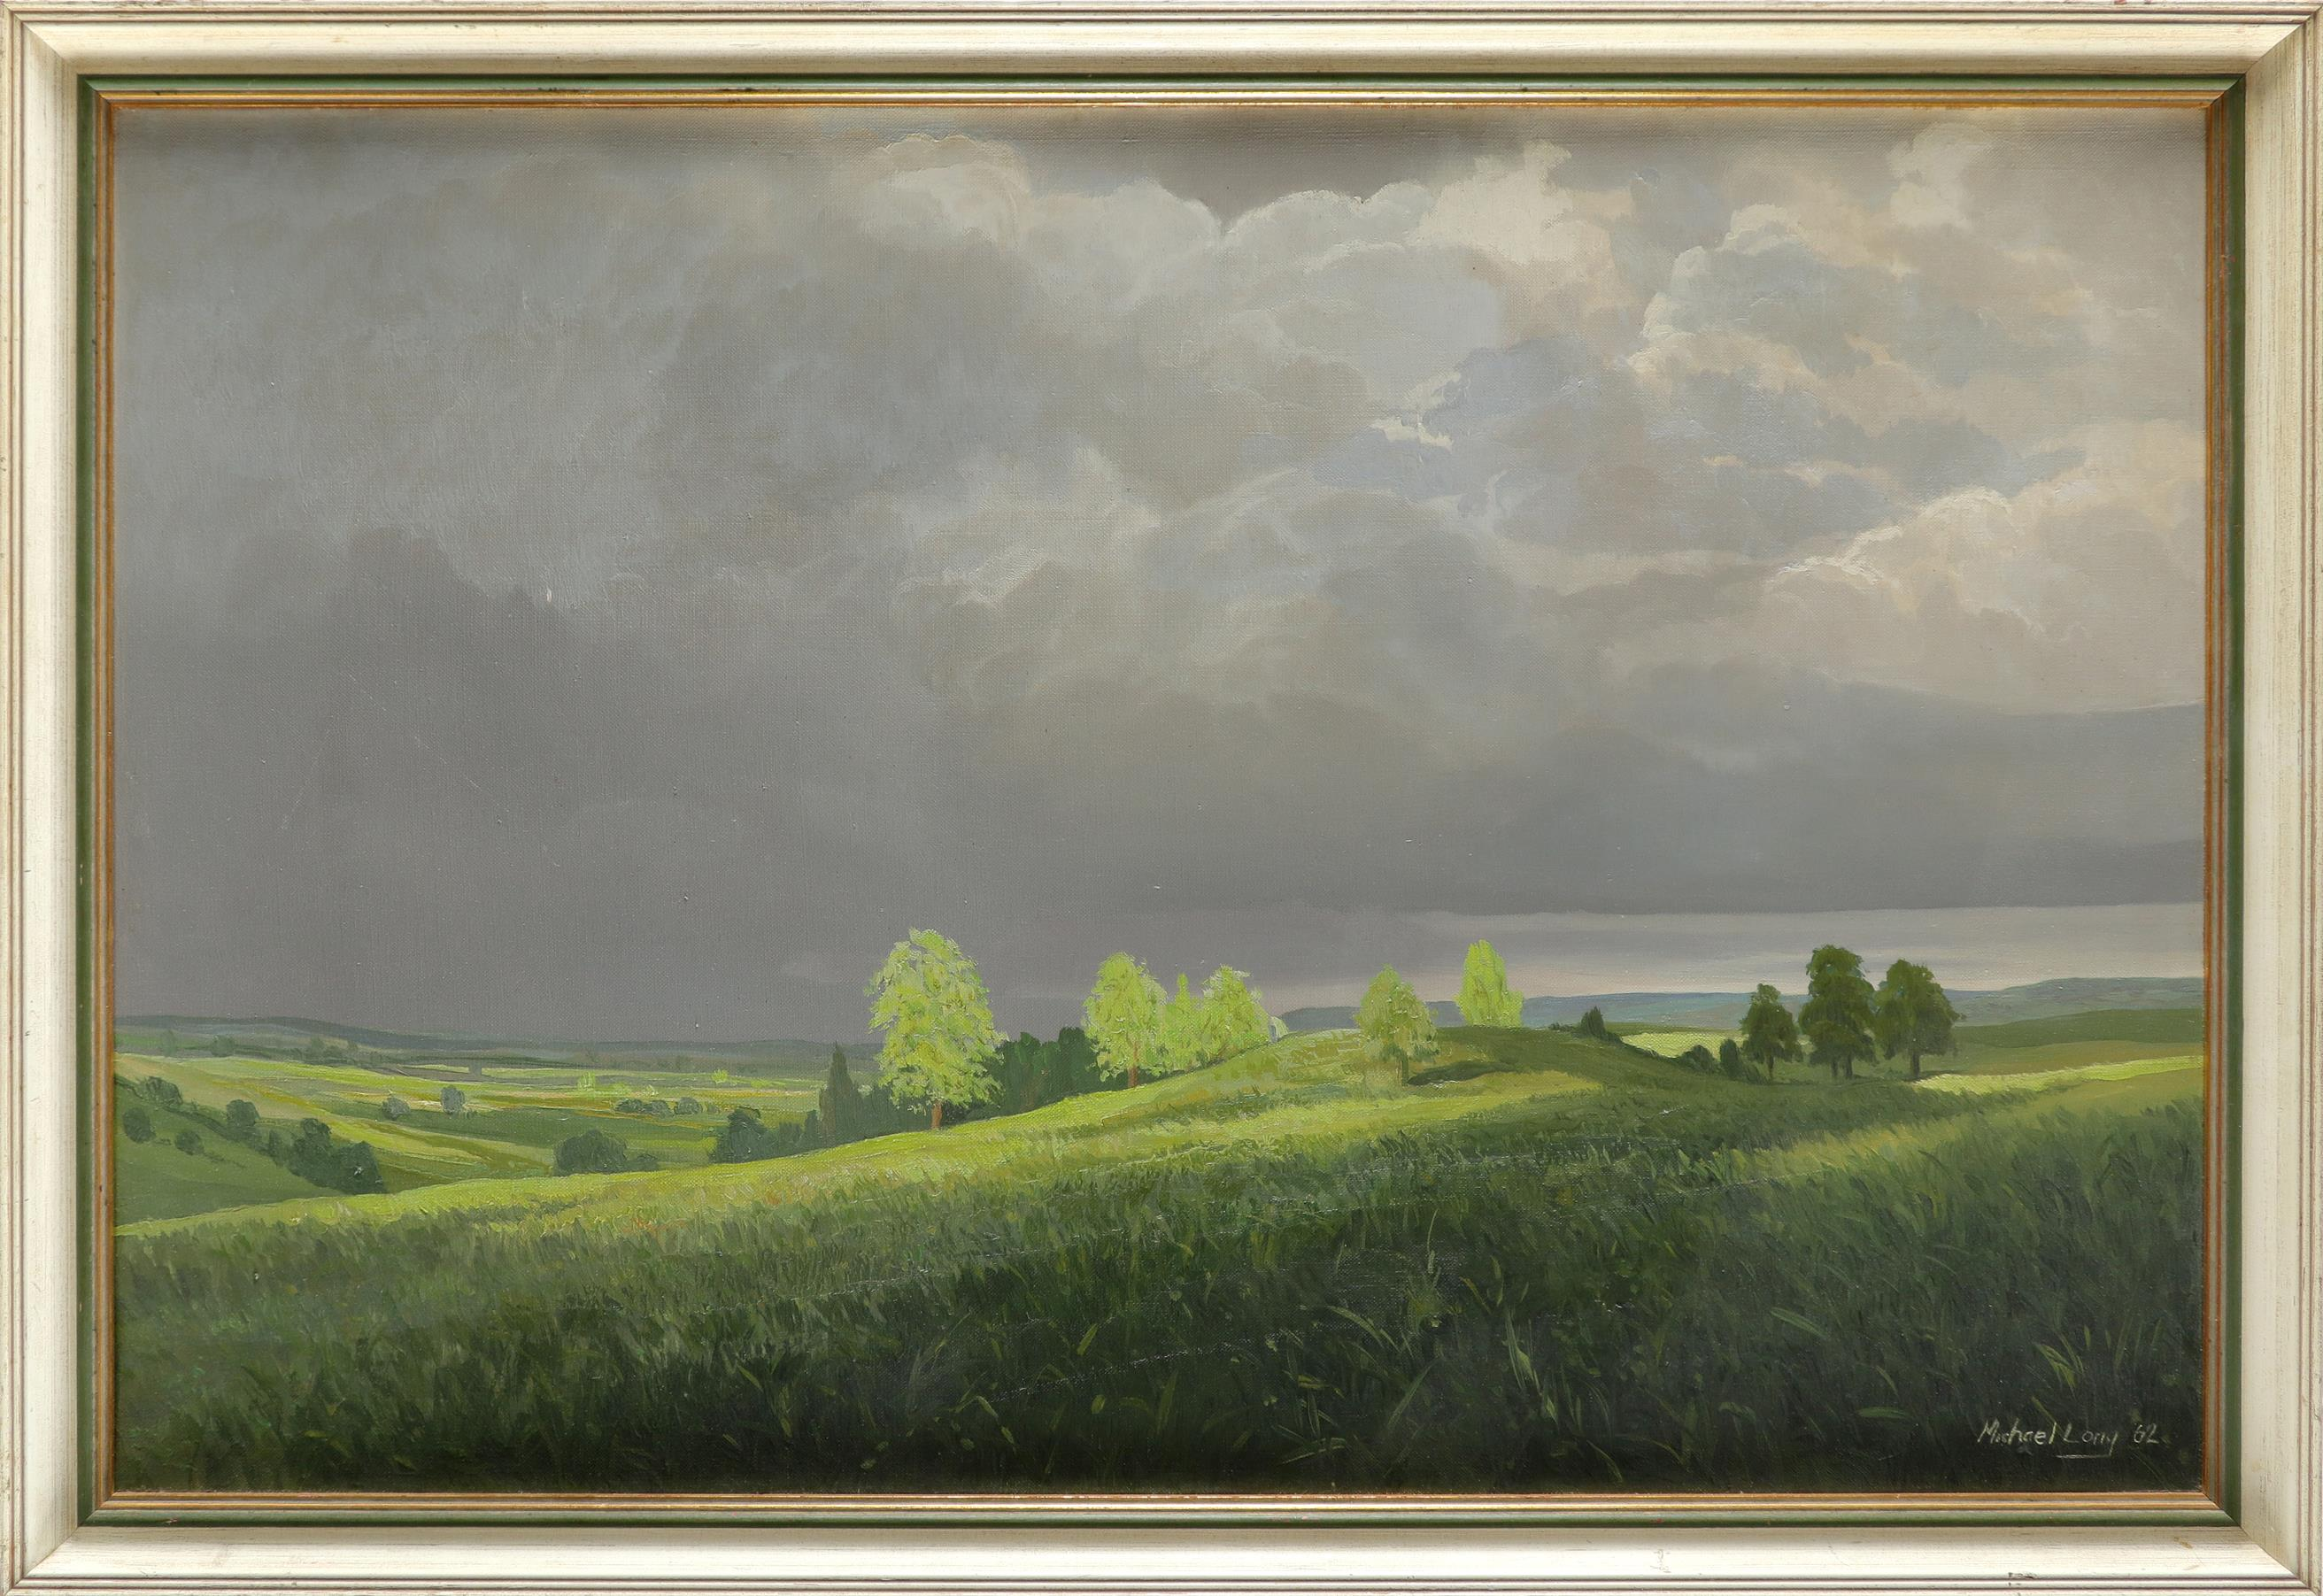 ‡Michael Long (b.1940) Sunlight after the storm Signed and dated Michael Long 62 (lower right) Oil - Image 2 of 3